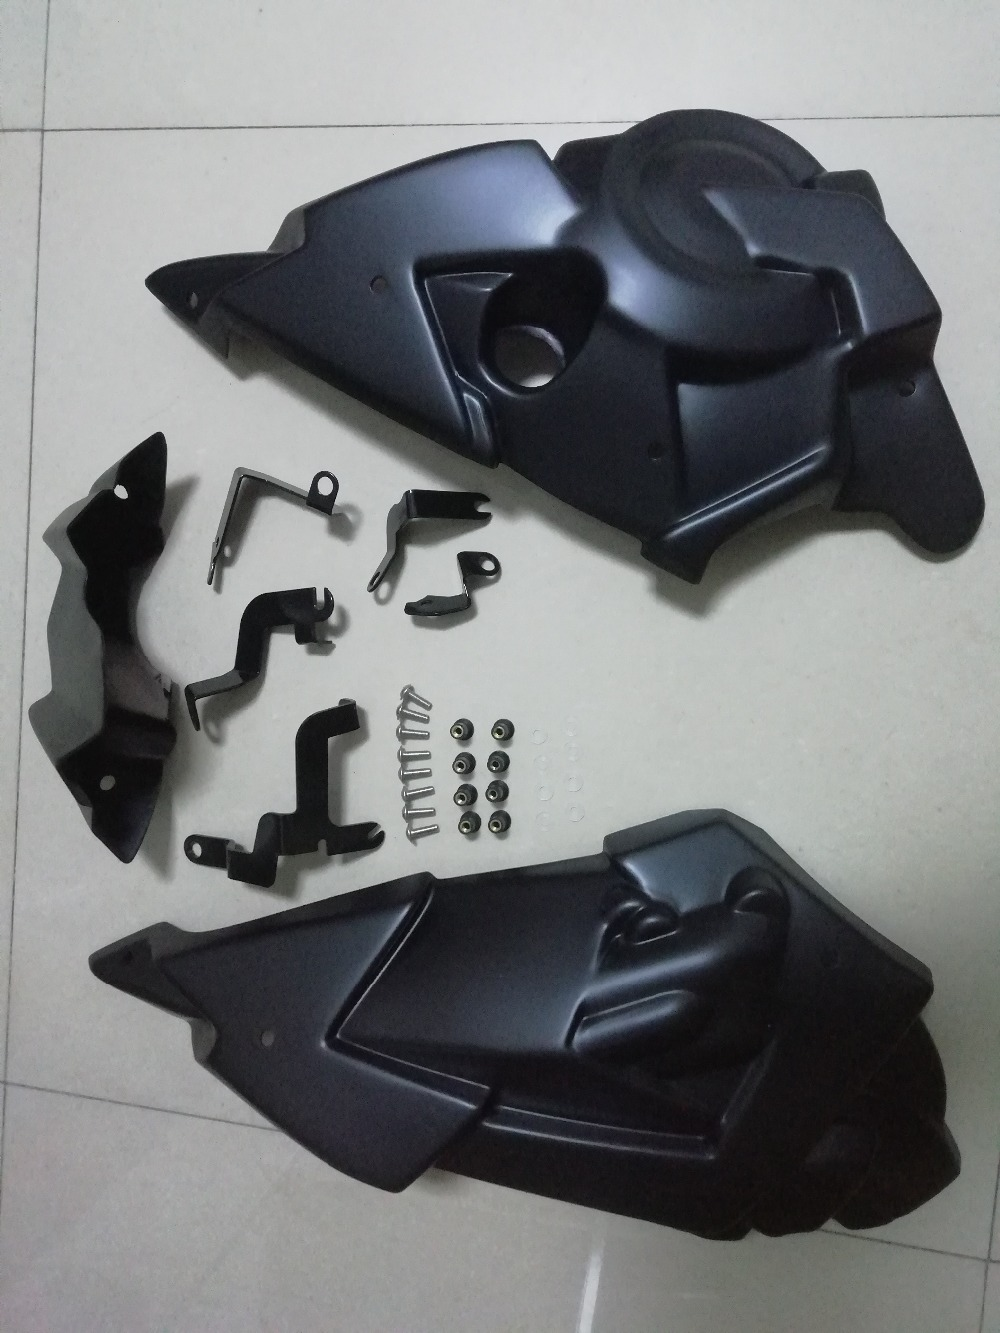 Bellypan Belly Pan Engine Spoiler Fairing ABS Body Frame Kit for Yamaha FZ 07 MT 07 FZ07 MT07 FZ MT 07 2014 2015 2016 2017 2018 in Covers Ornamental Mouldings from Automobiles Motorcycles